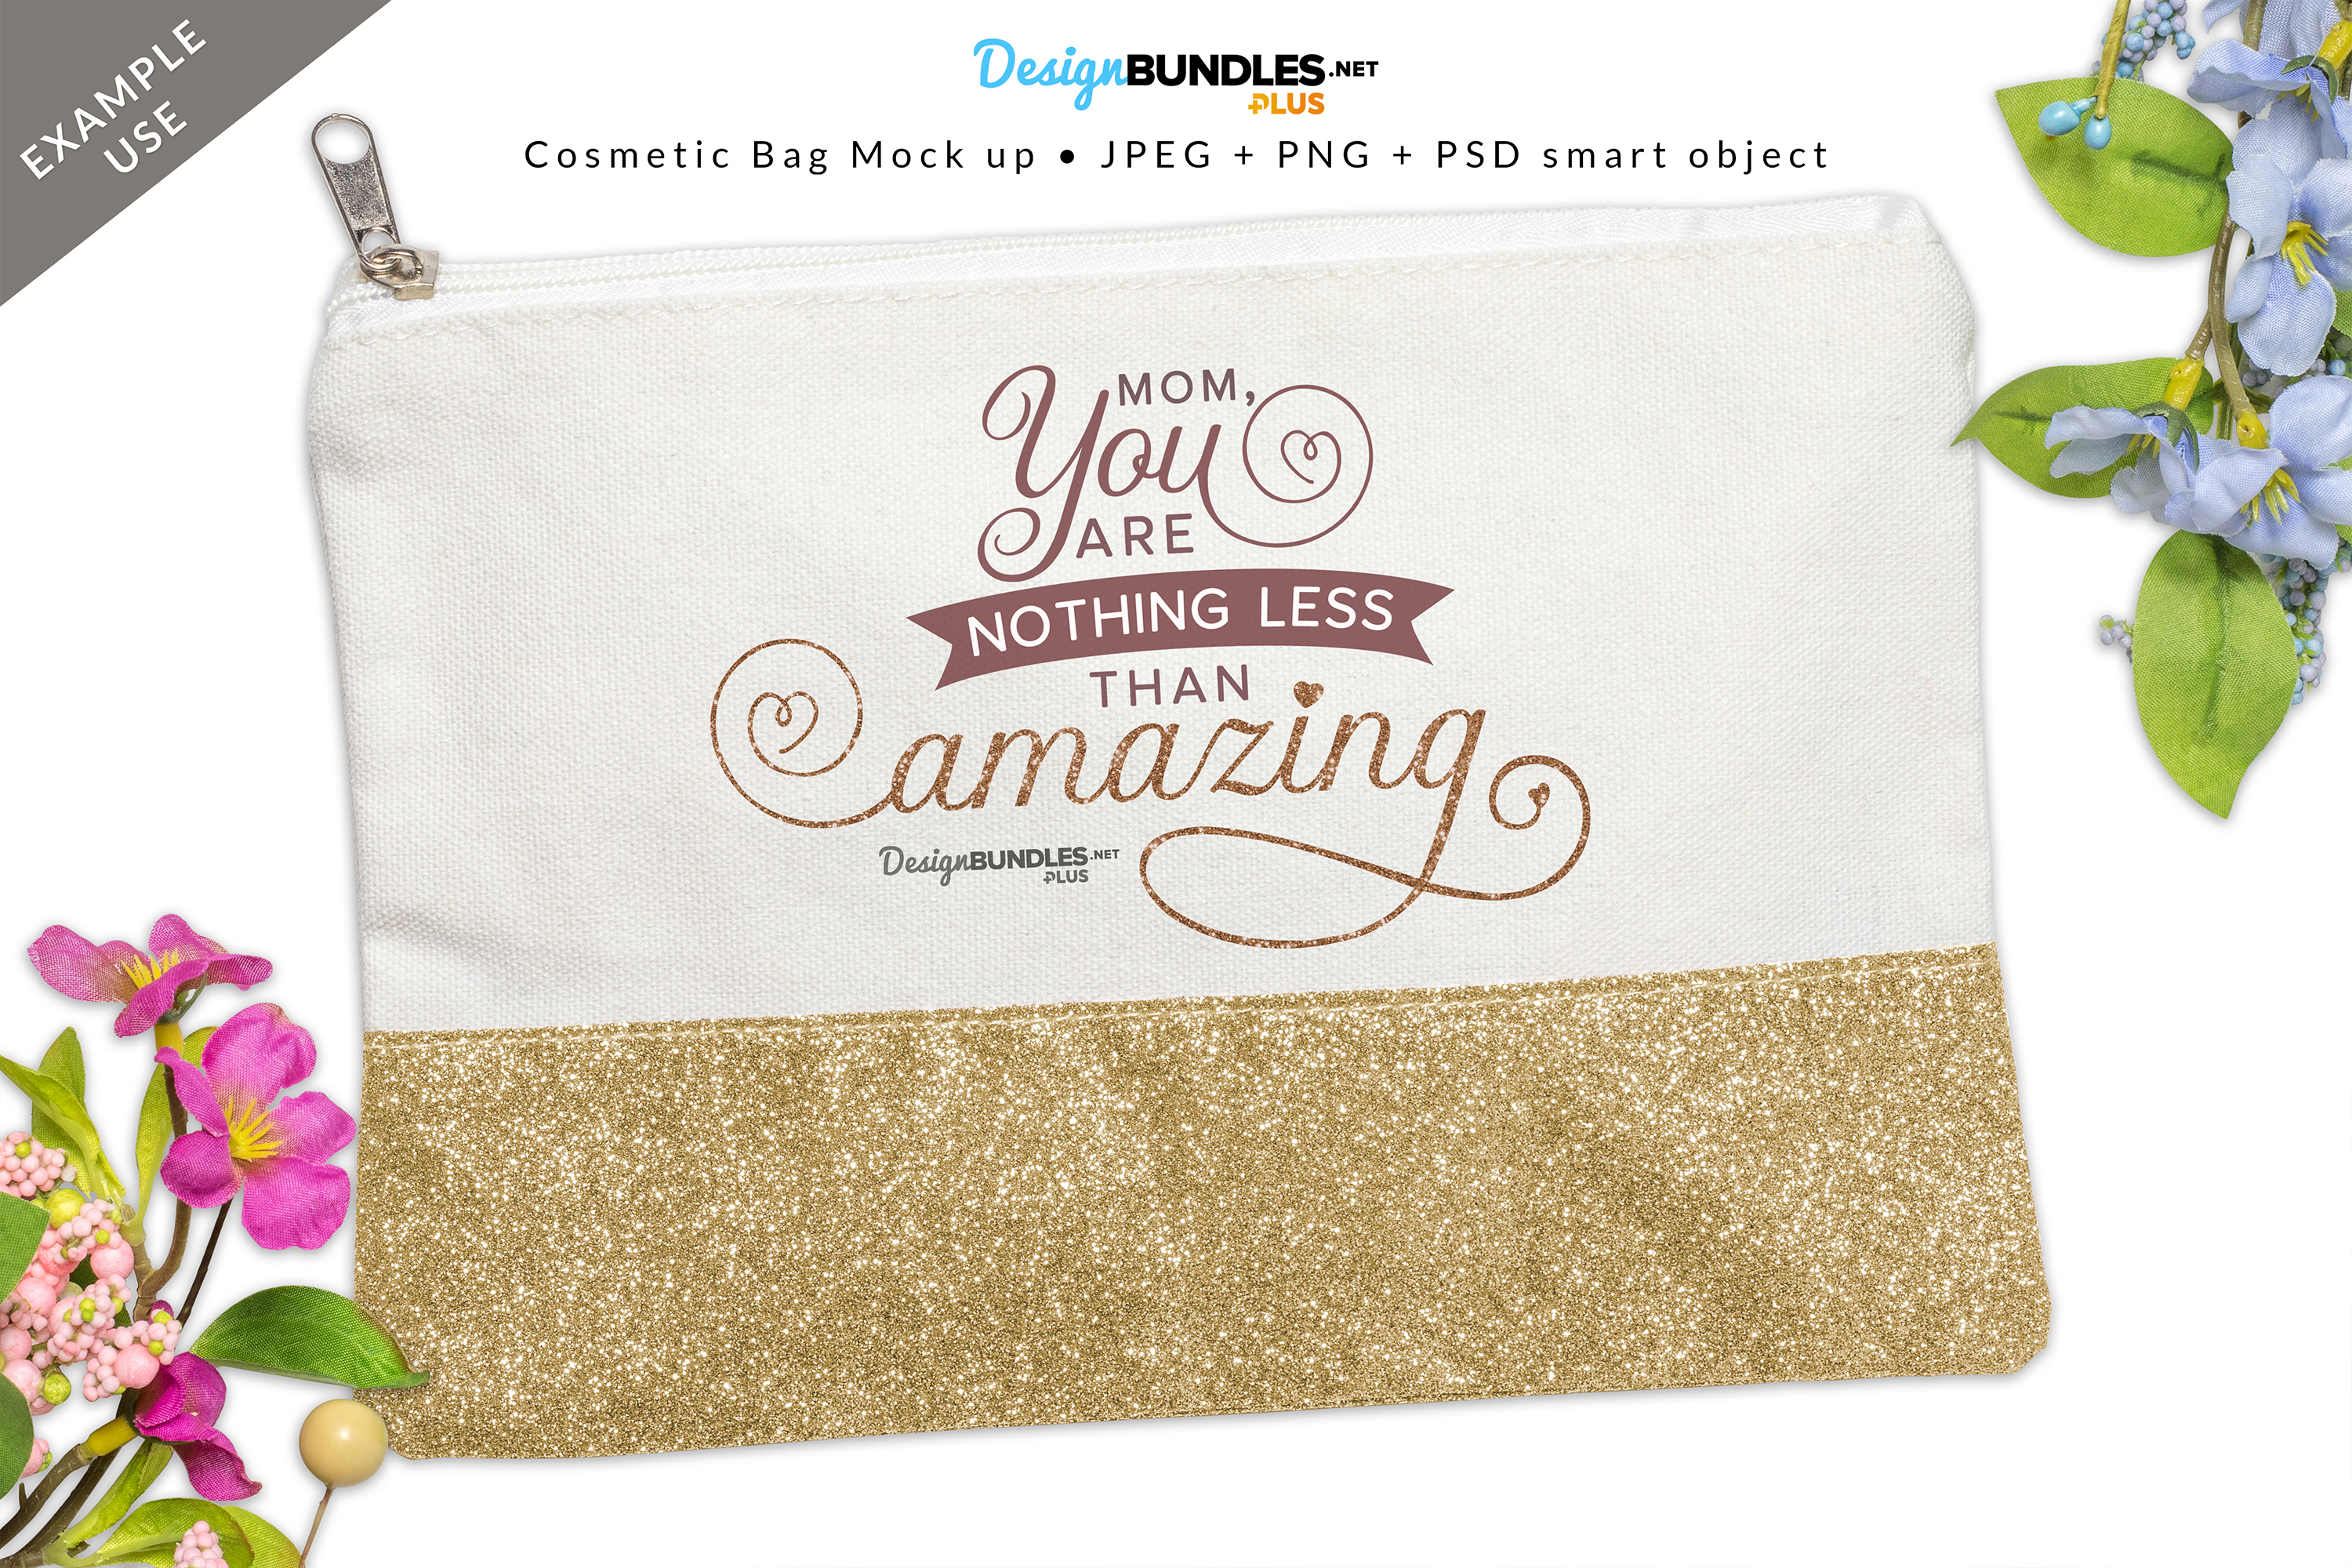 Cosmetic Bag Mock up example image 2